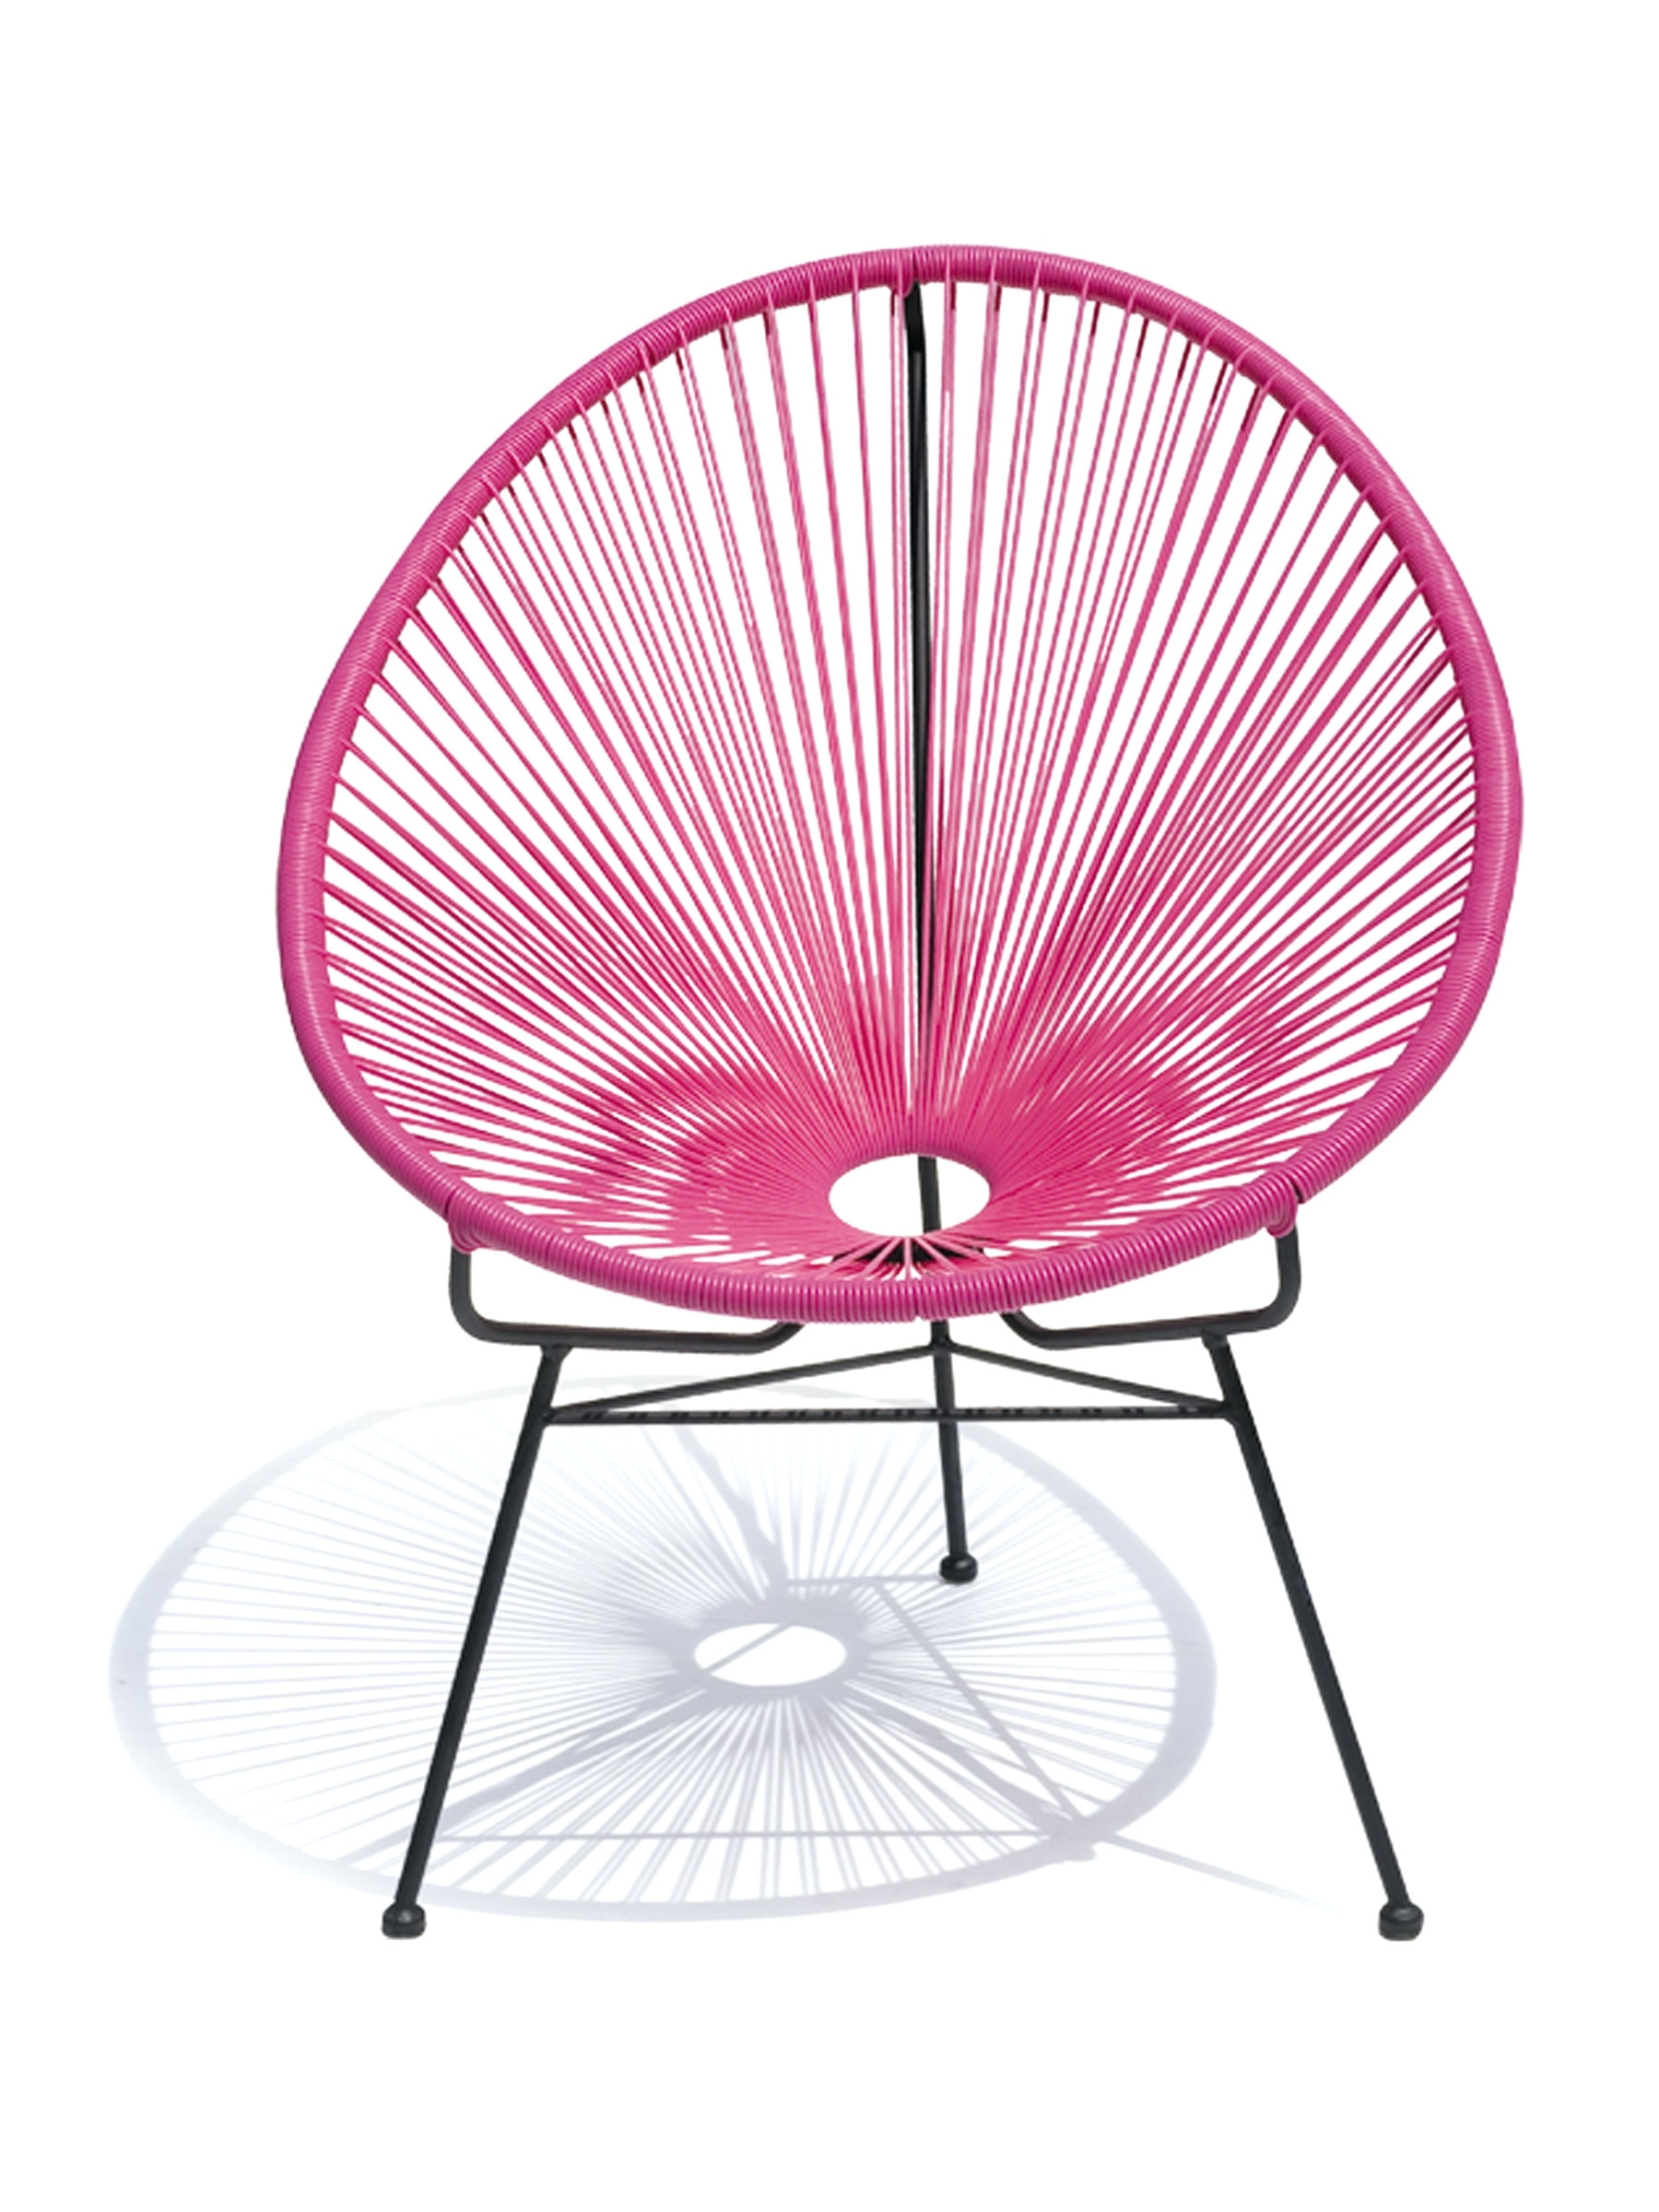 Well Known Hot Pink Chaise Lounge Chairs Inside Pink Beach Lounge Chair • Lounge Chairs Ideas (View 15 of 15)